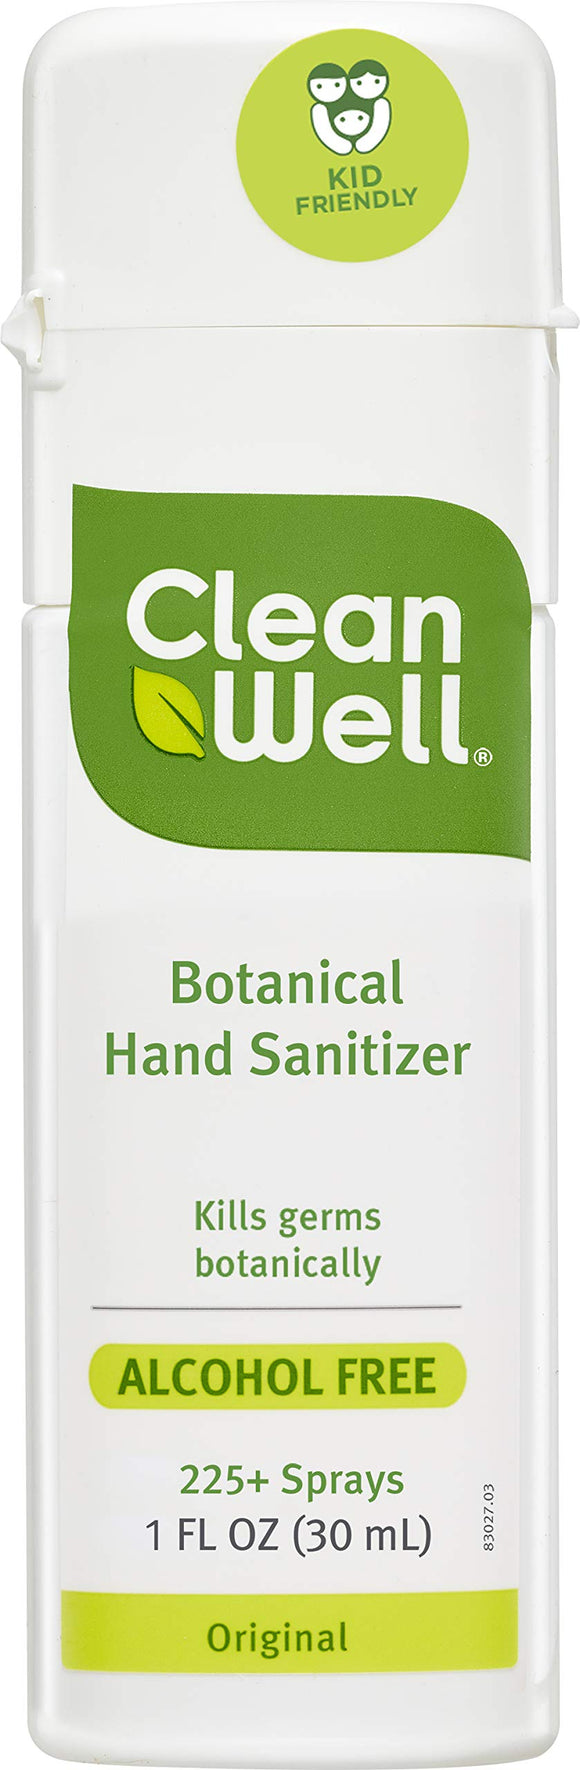 [product_id] - Antibiotics & Antiseptics, Cleanwell, First Aid, Hand Sanitizers, Health & Household, Health and Beauty, Health Care - Wellica